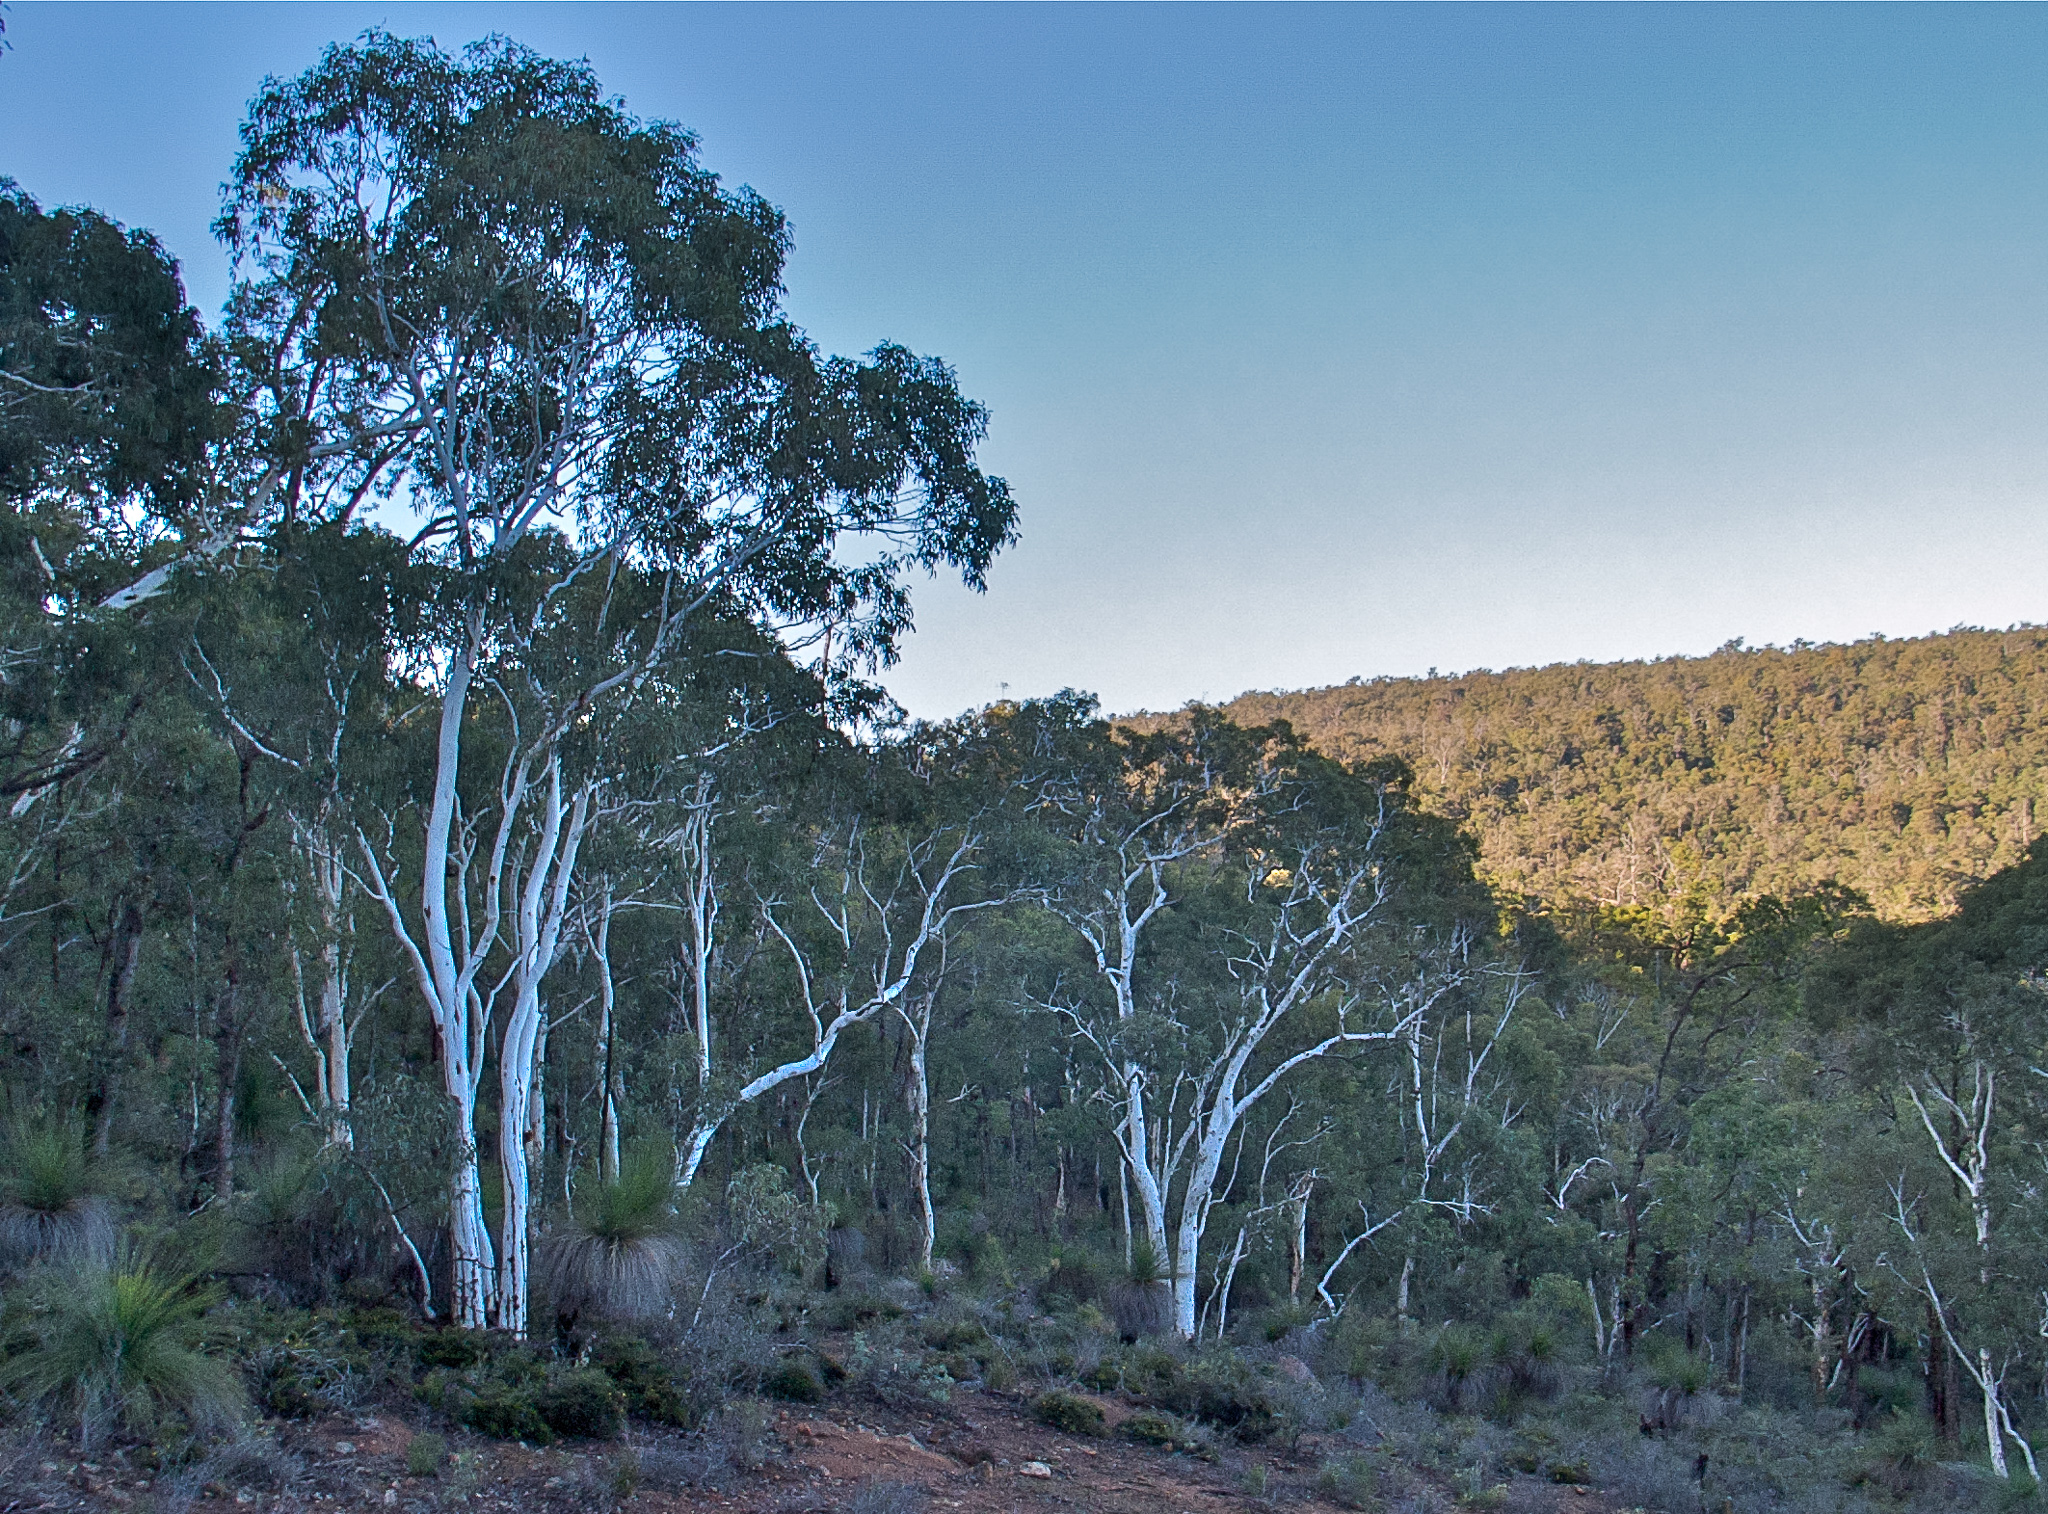 Darling range ghost gum